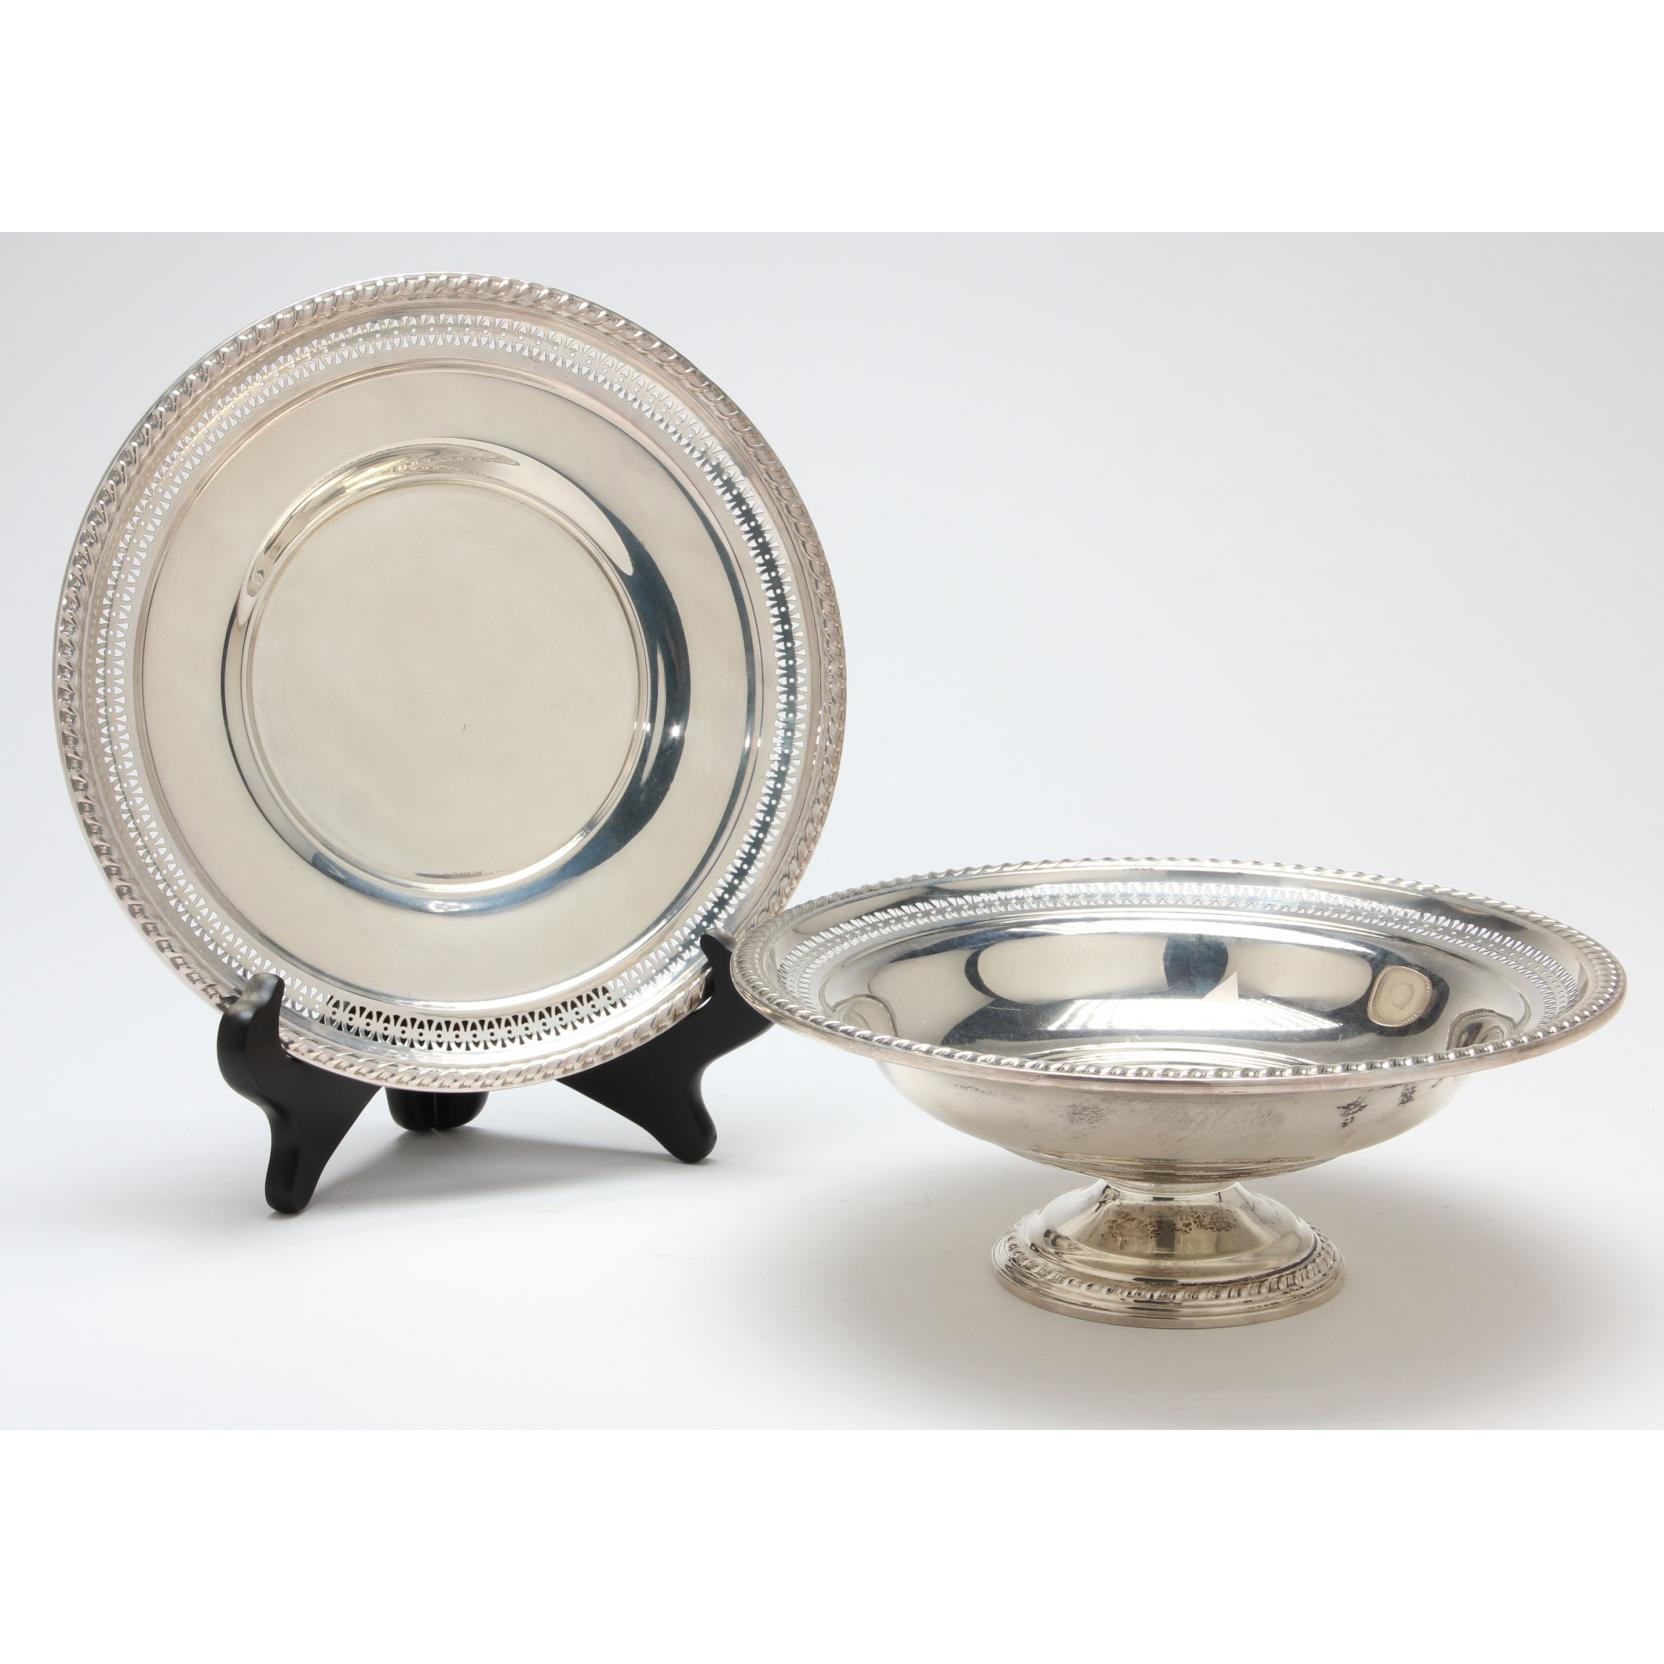 two-lapierre-sterling-silver-serving-dishes